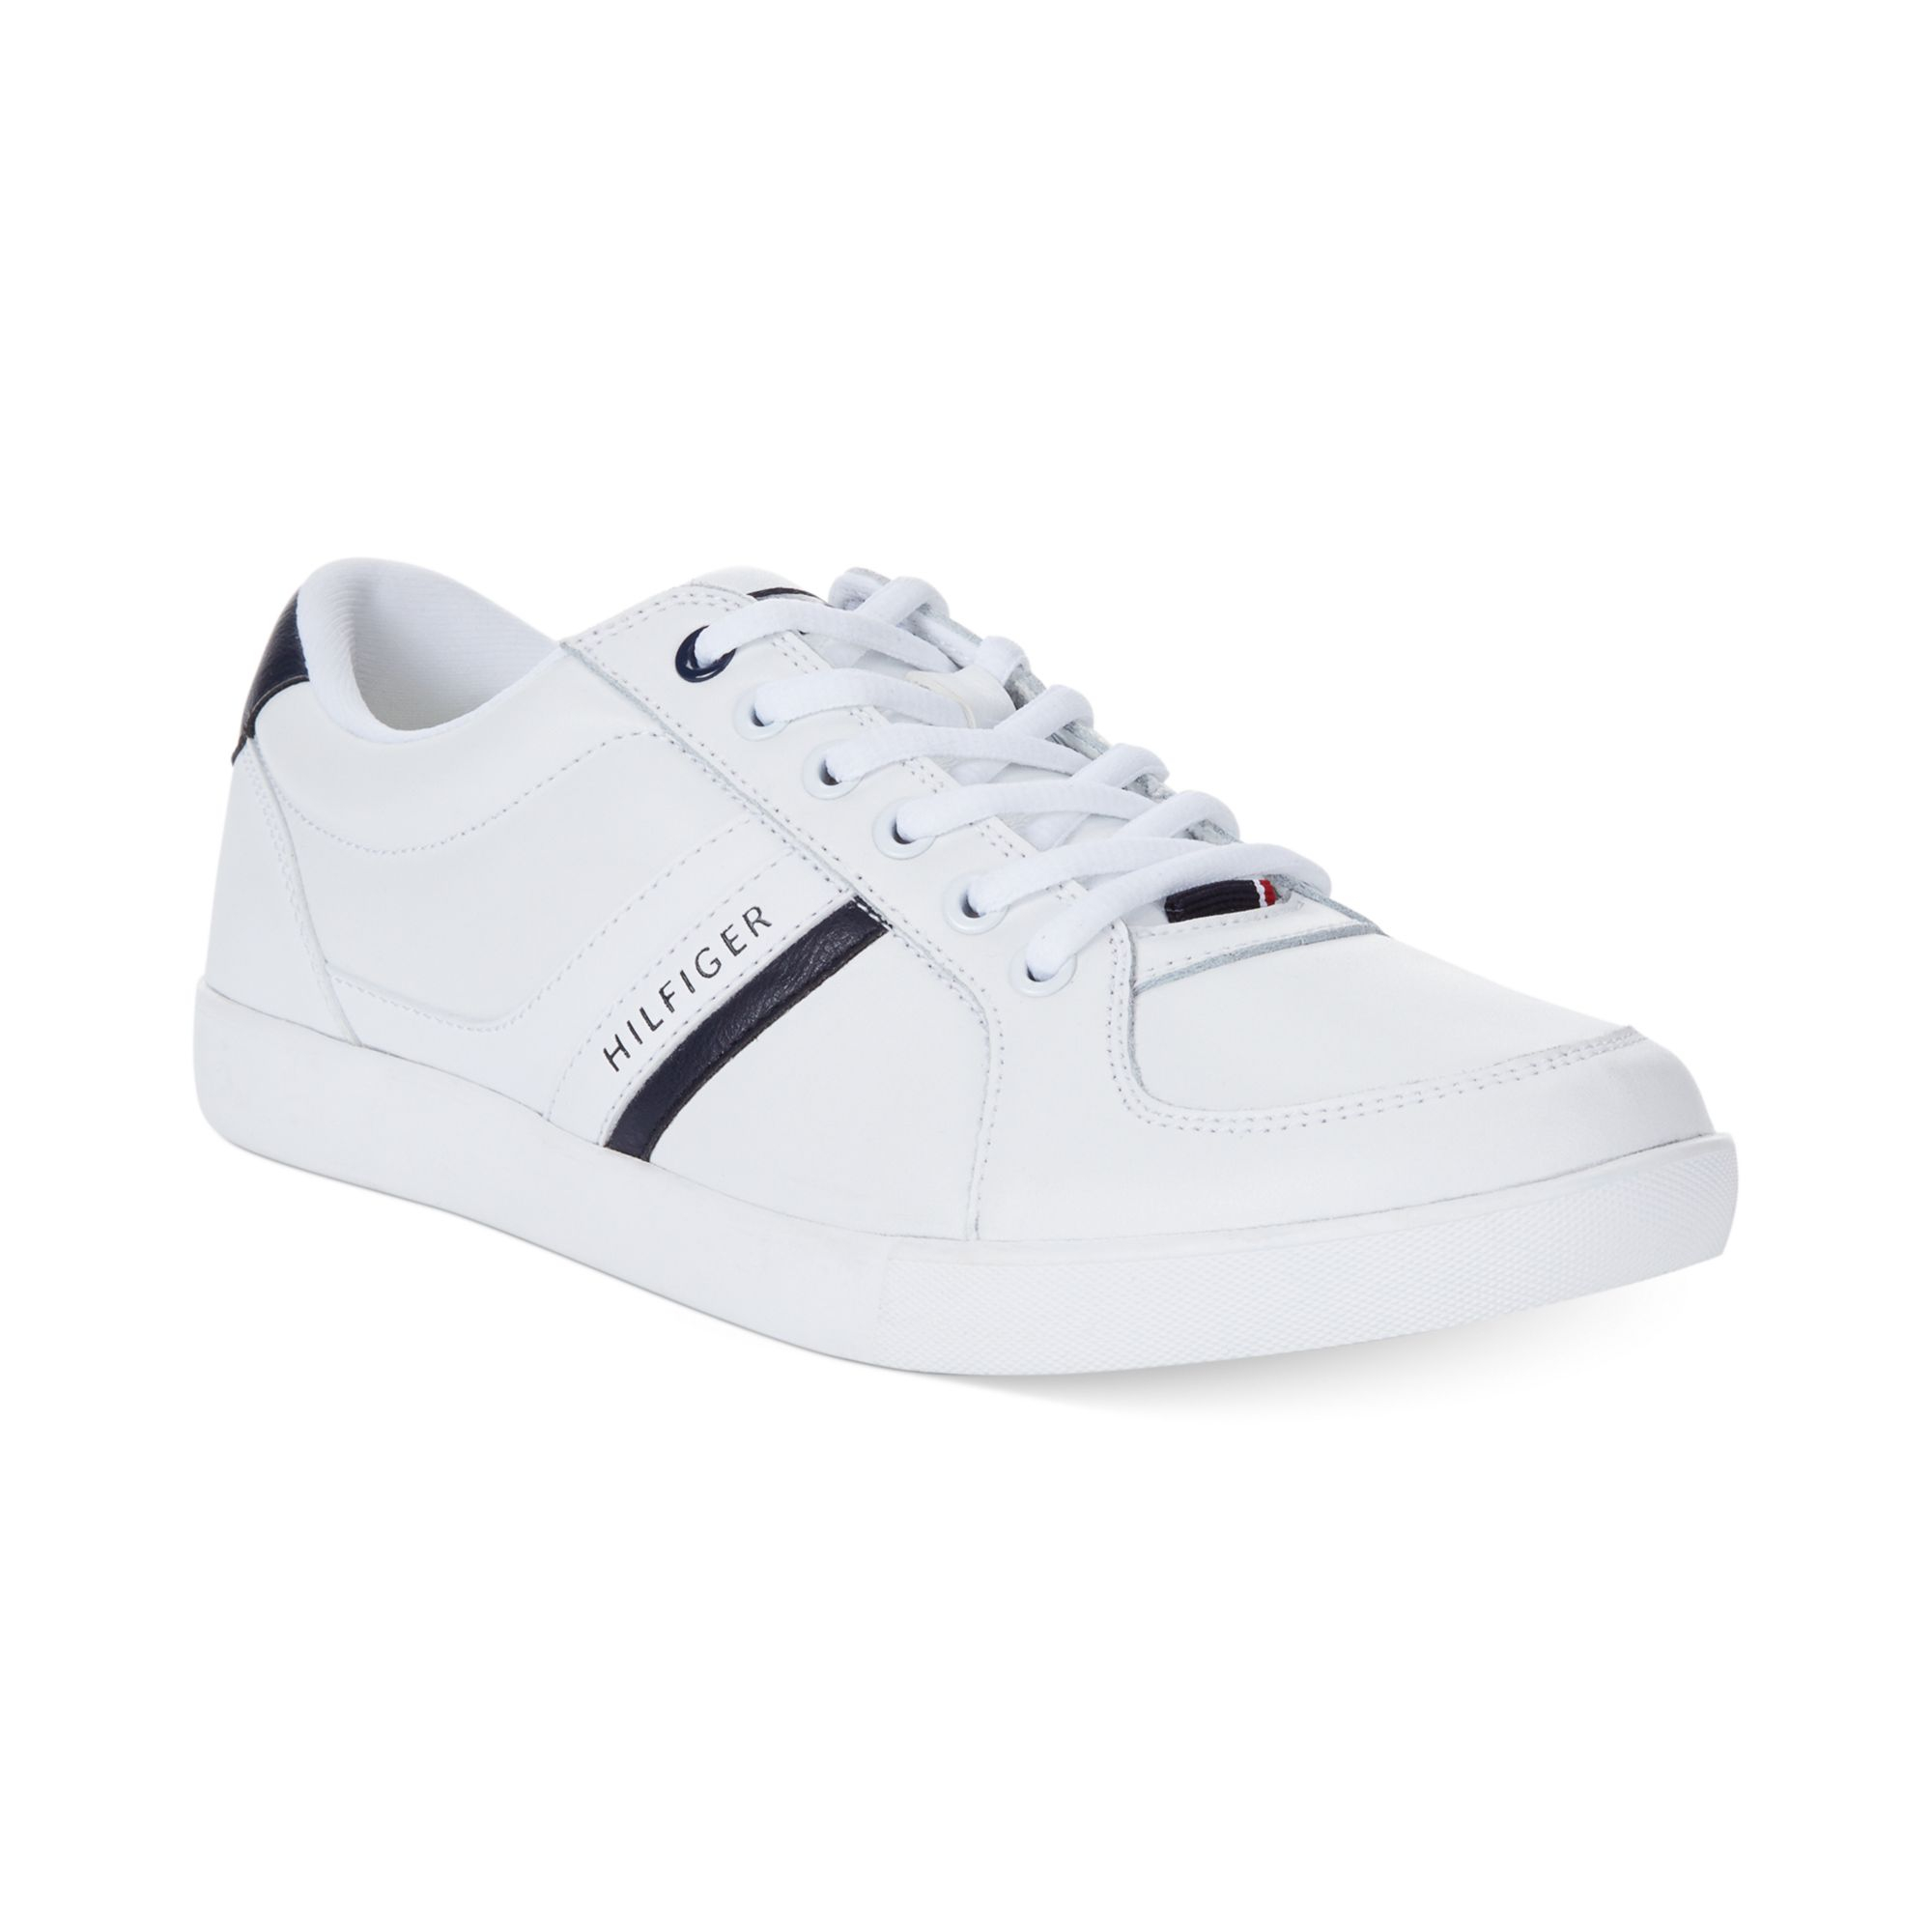 1bdf26f9ed904b Lyst - Tommy Hilfiger Thorne Sneakers in White for Men